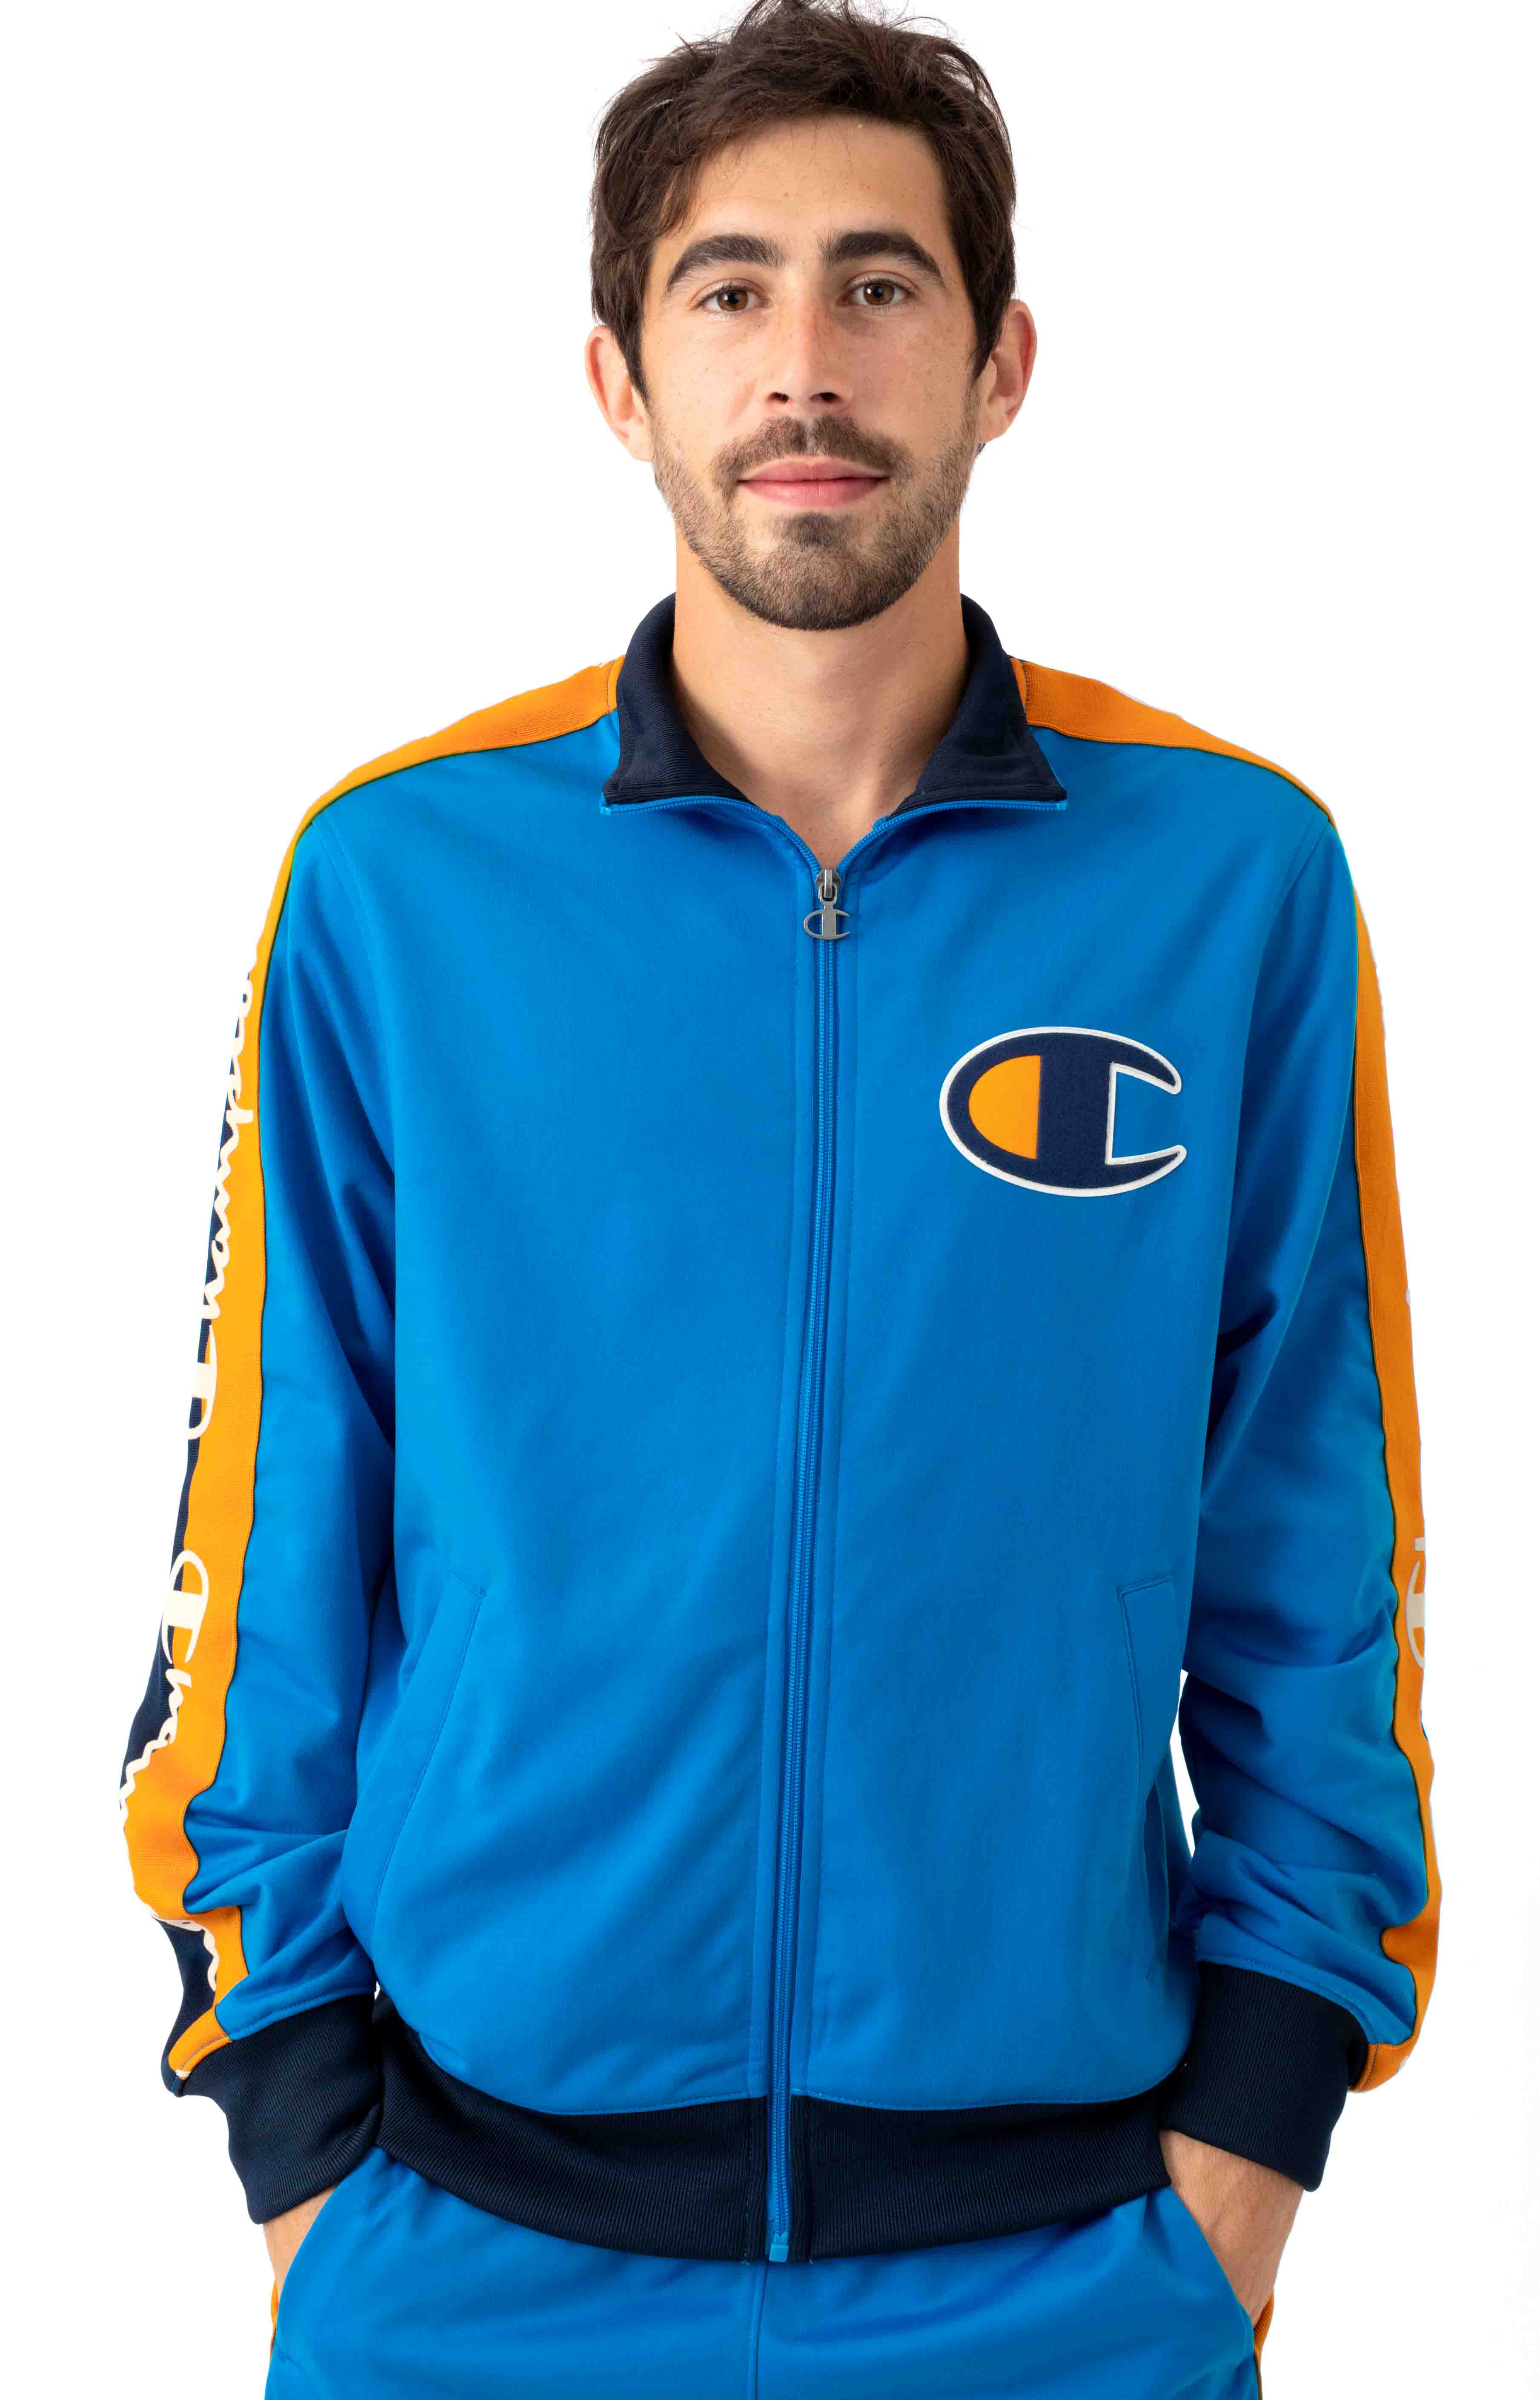 Tricot Track Jacket w/ Champion Taping - Running Waves/Navy